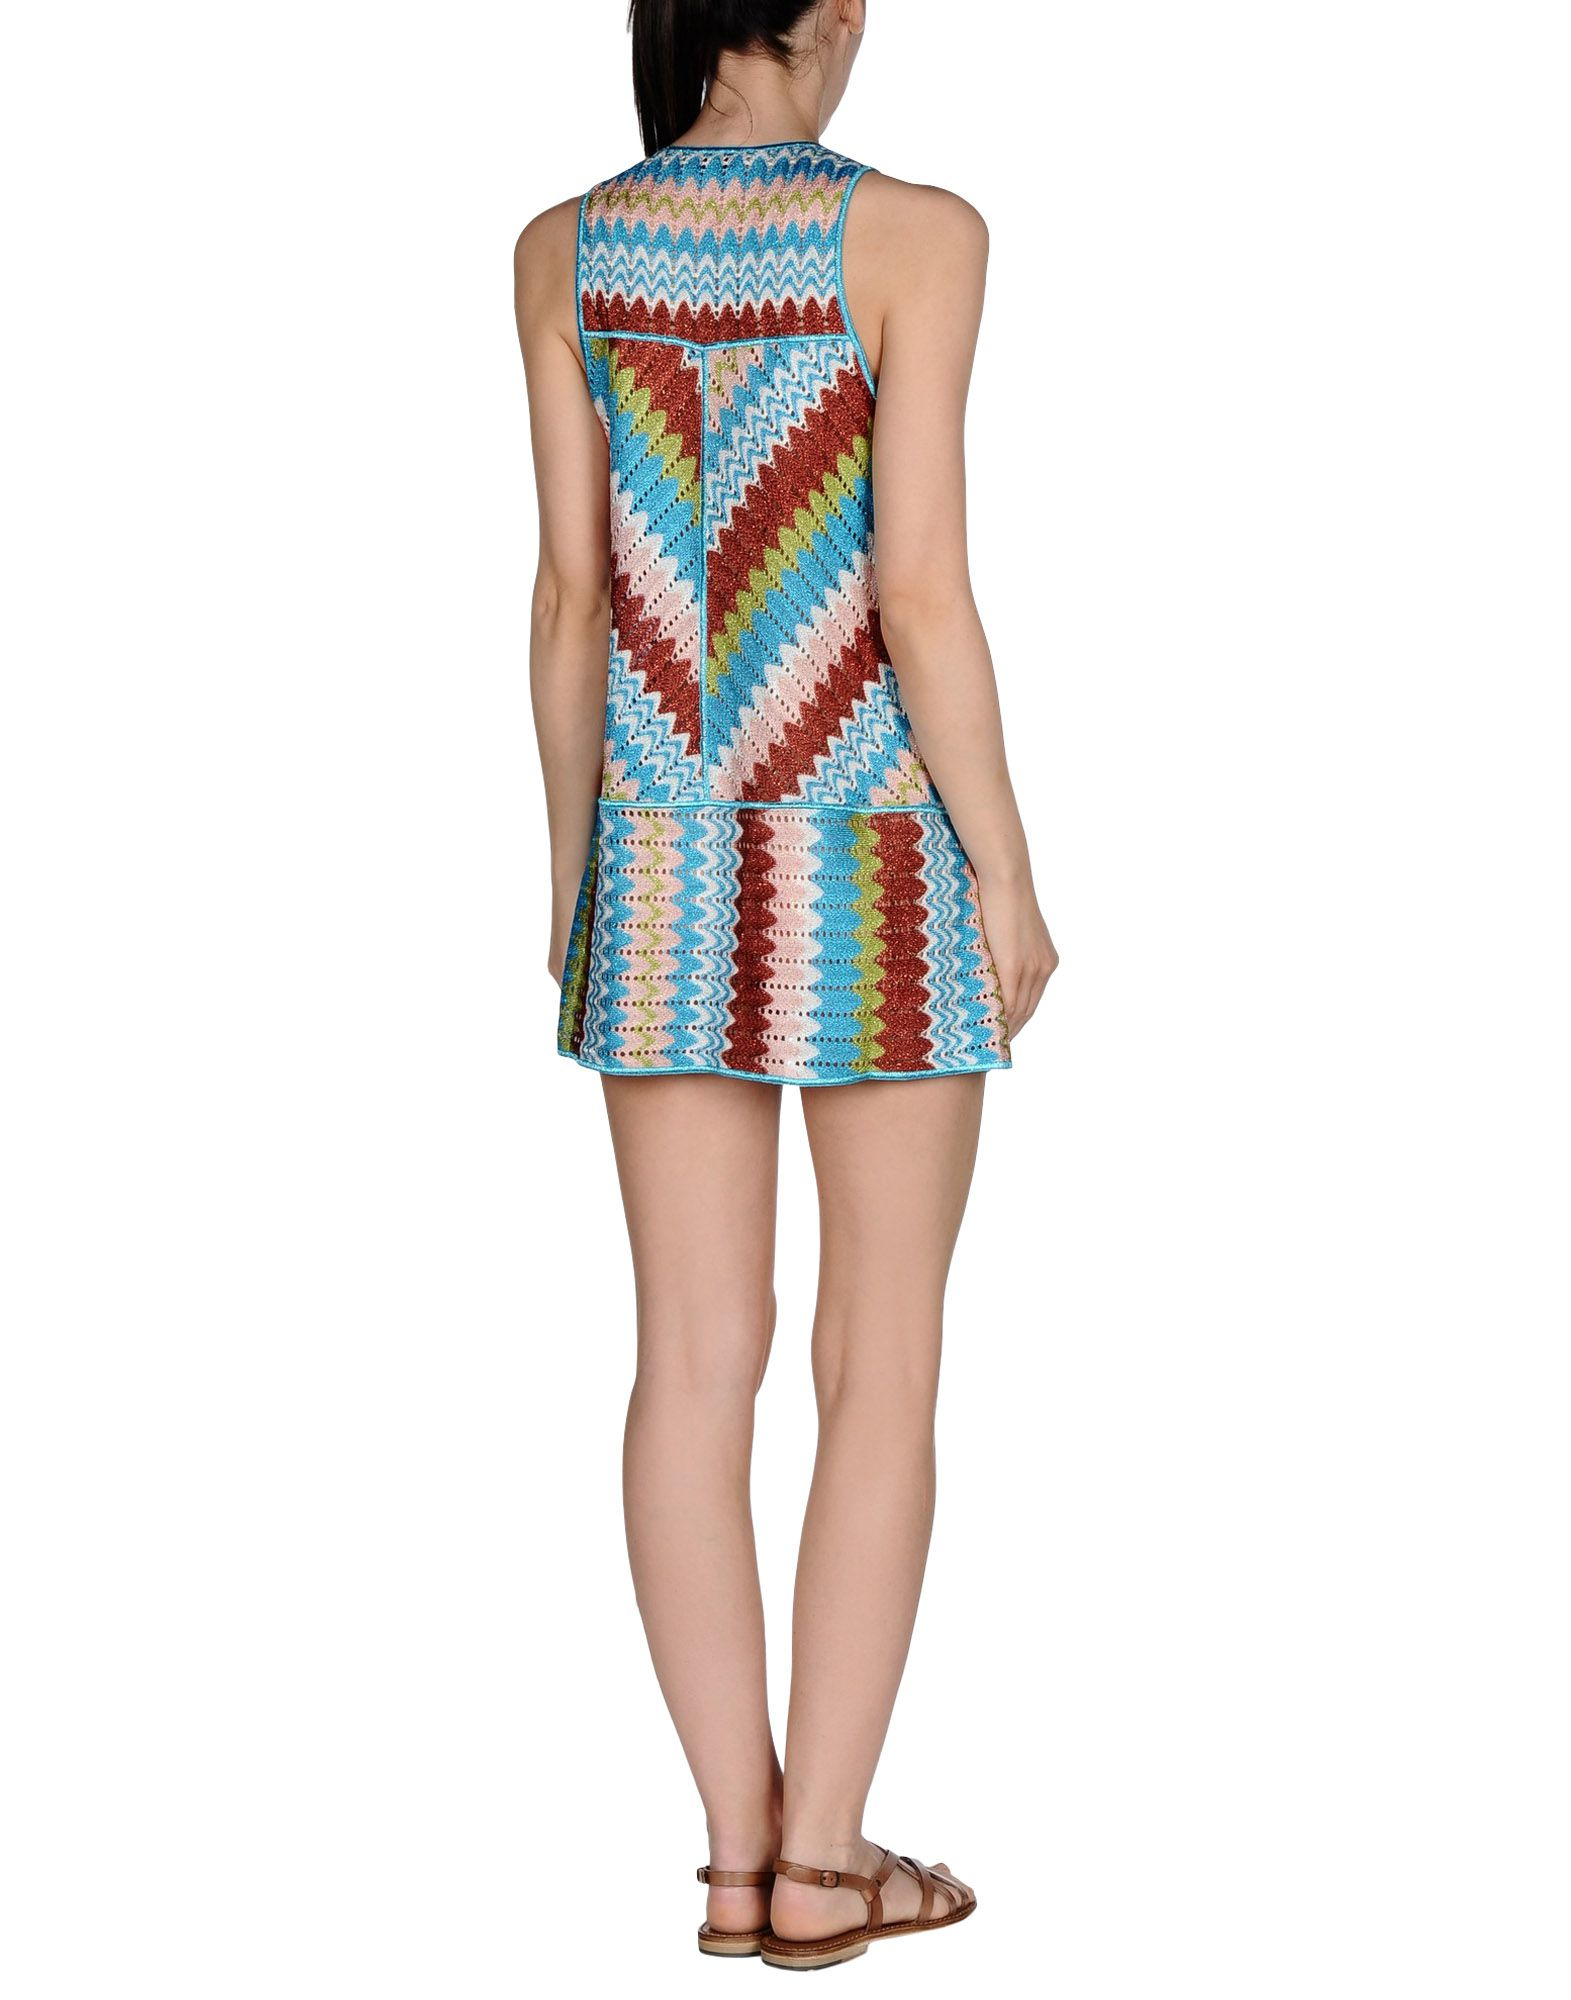 Lyst - Missoni Cover-up in Blue